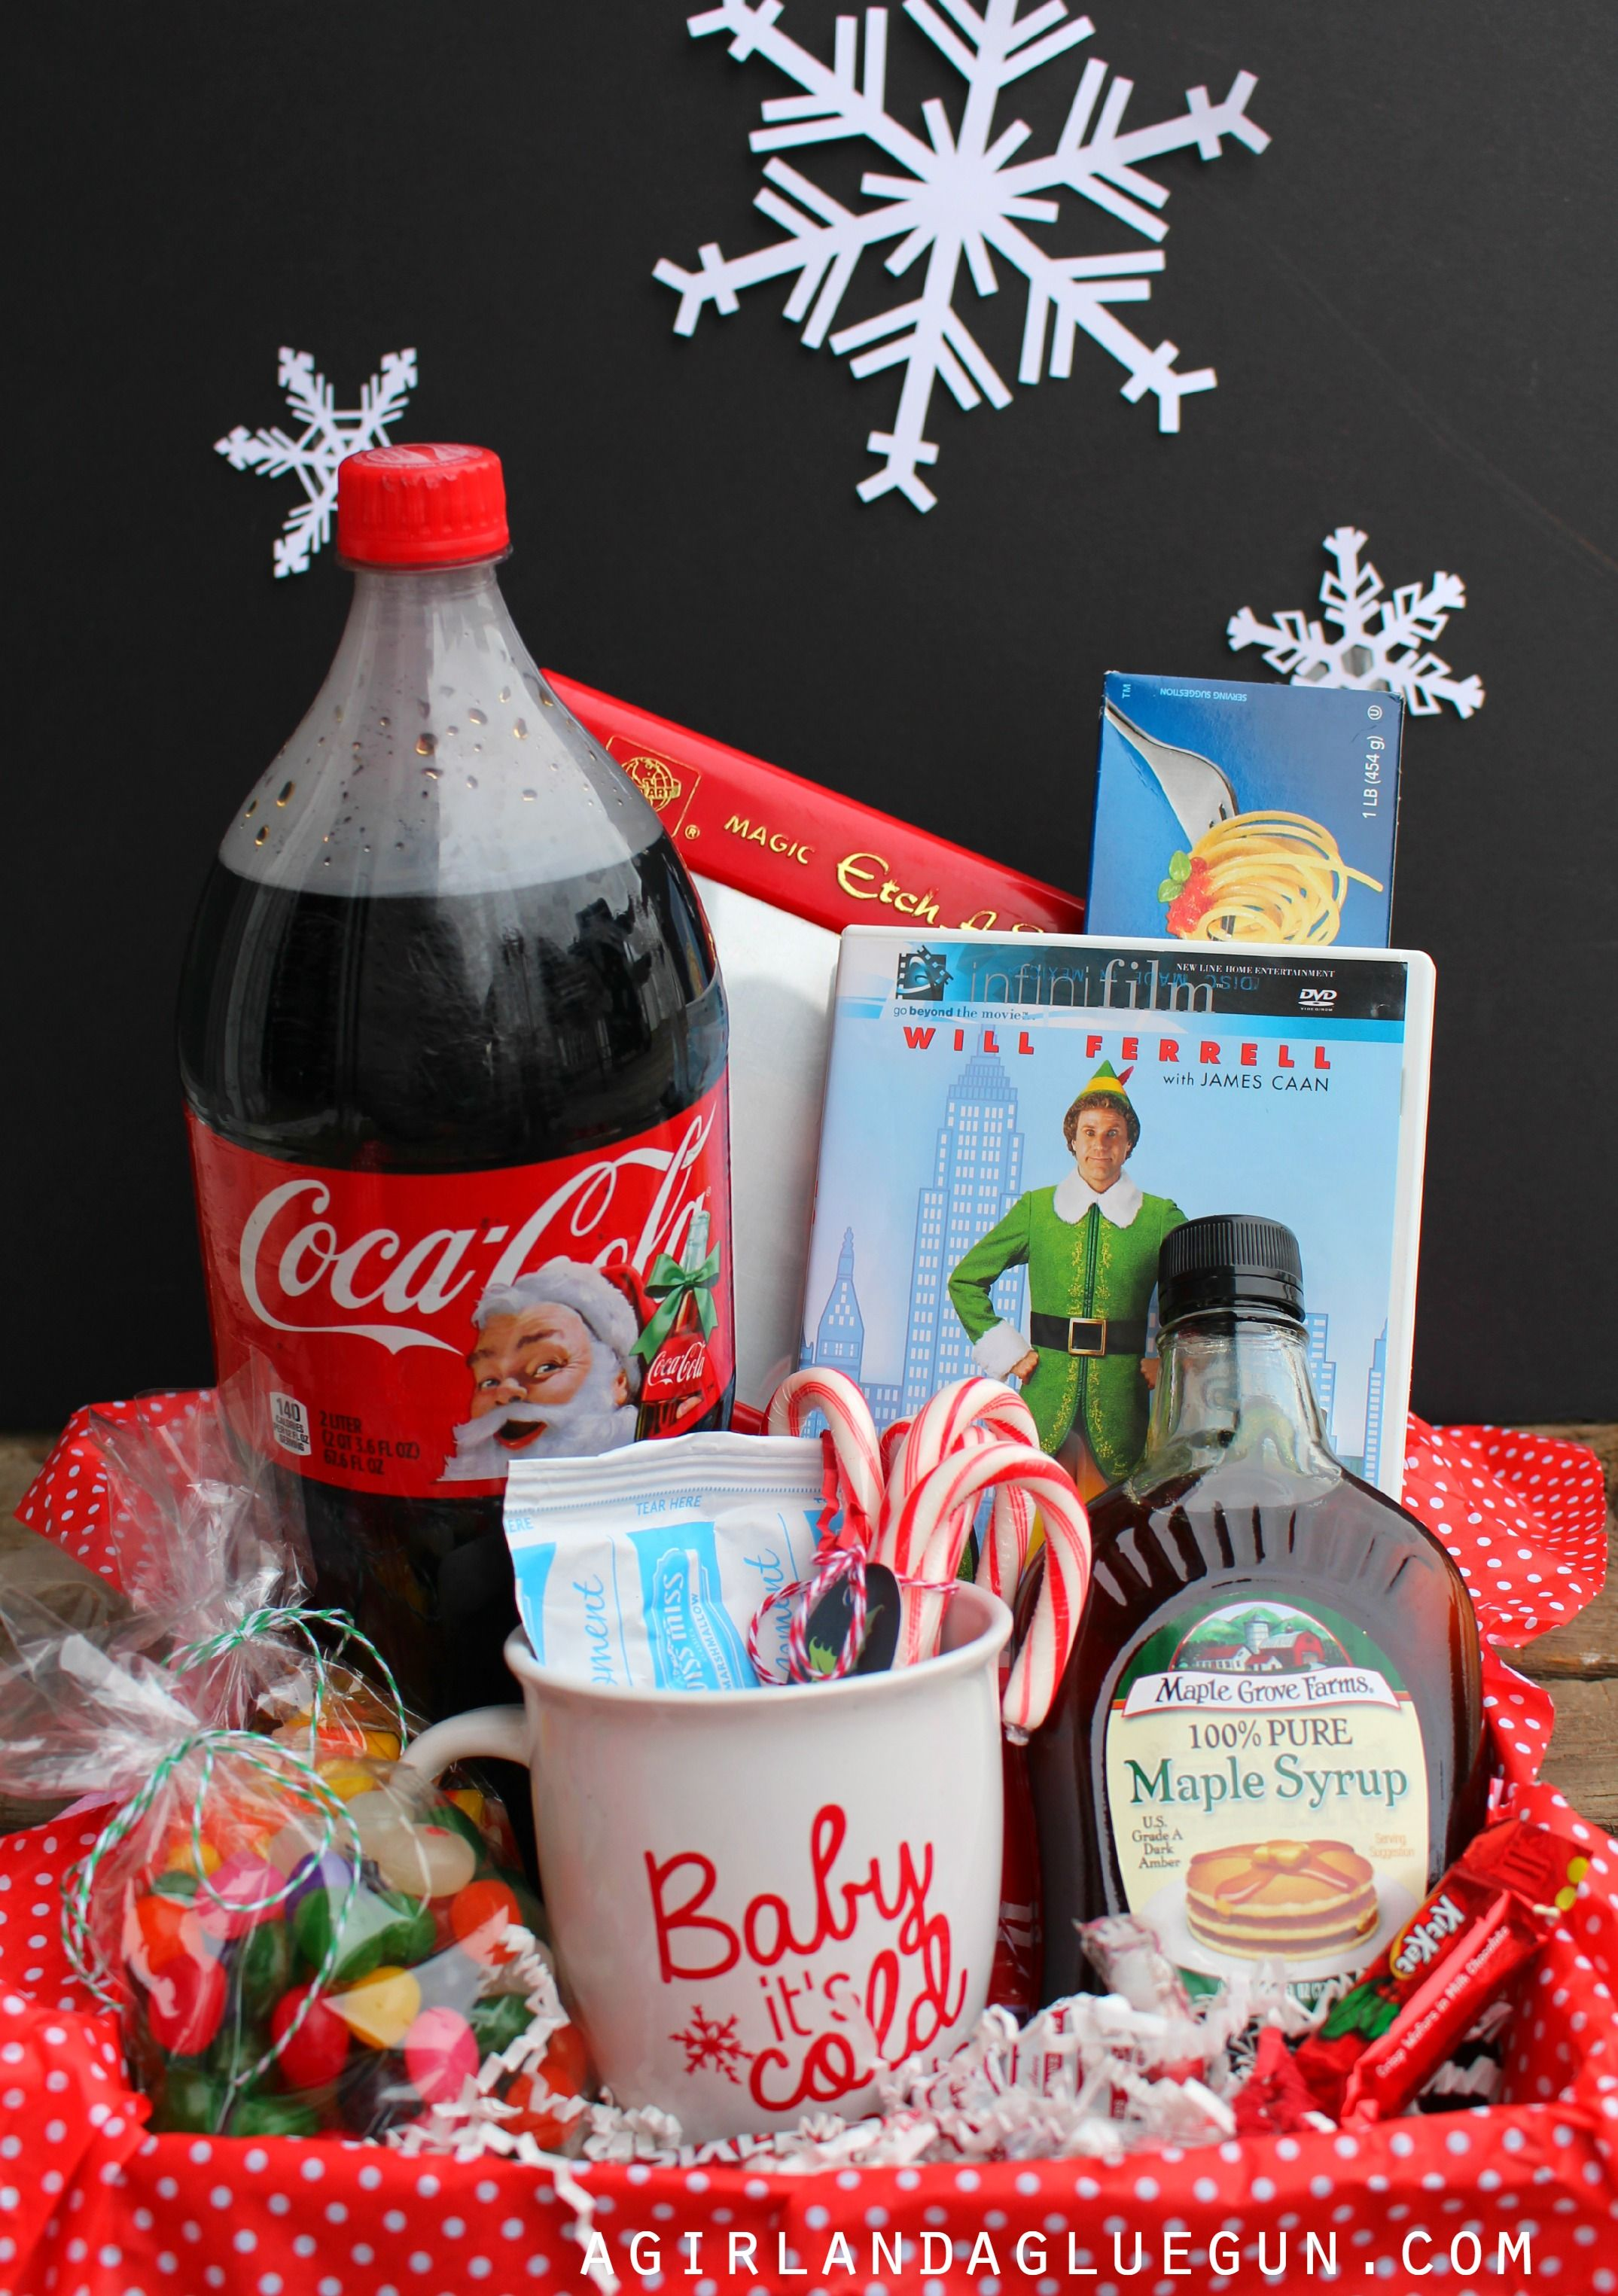 Themed gift basket roundup | Holidays | Pinterest | Gifts, Gift ...